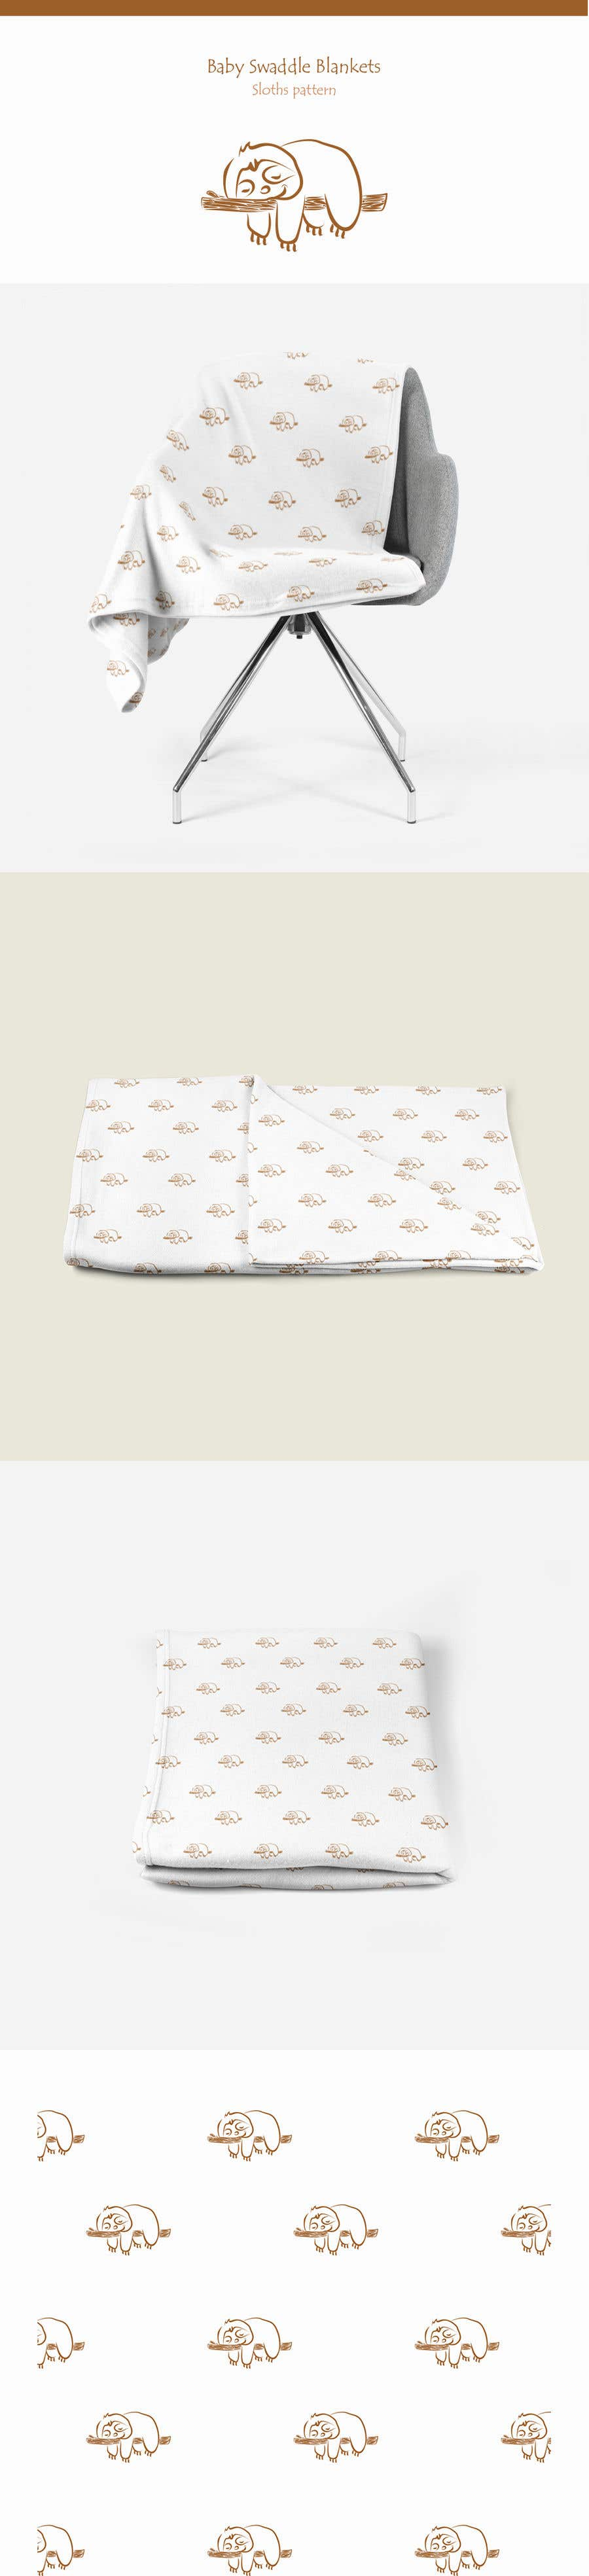 Proposition n°123 du concours Design 3 Baby Swaddle Blankets